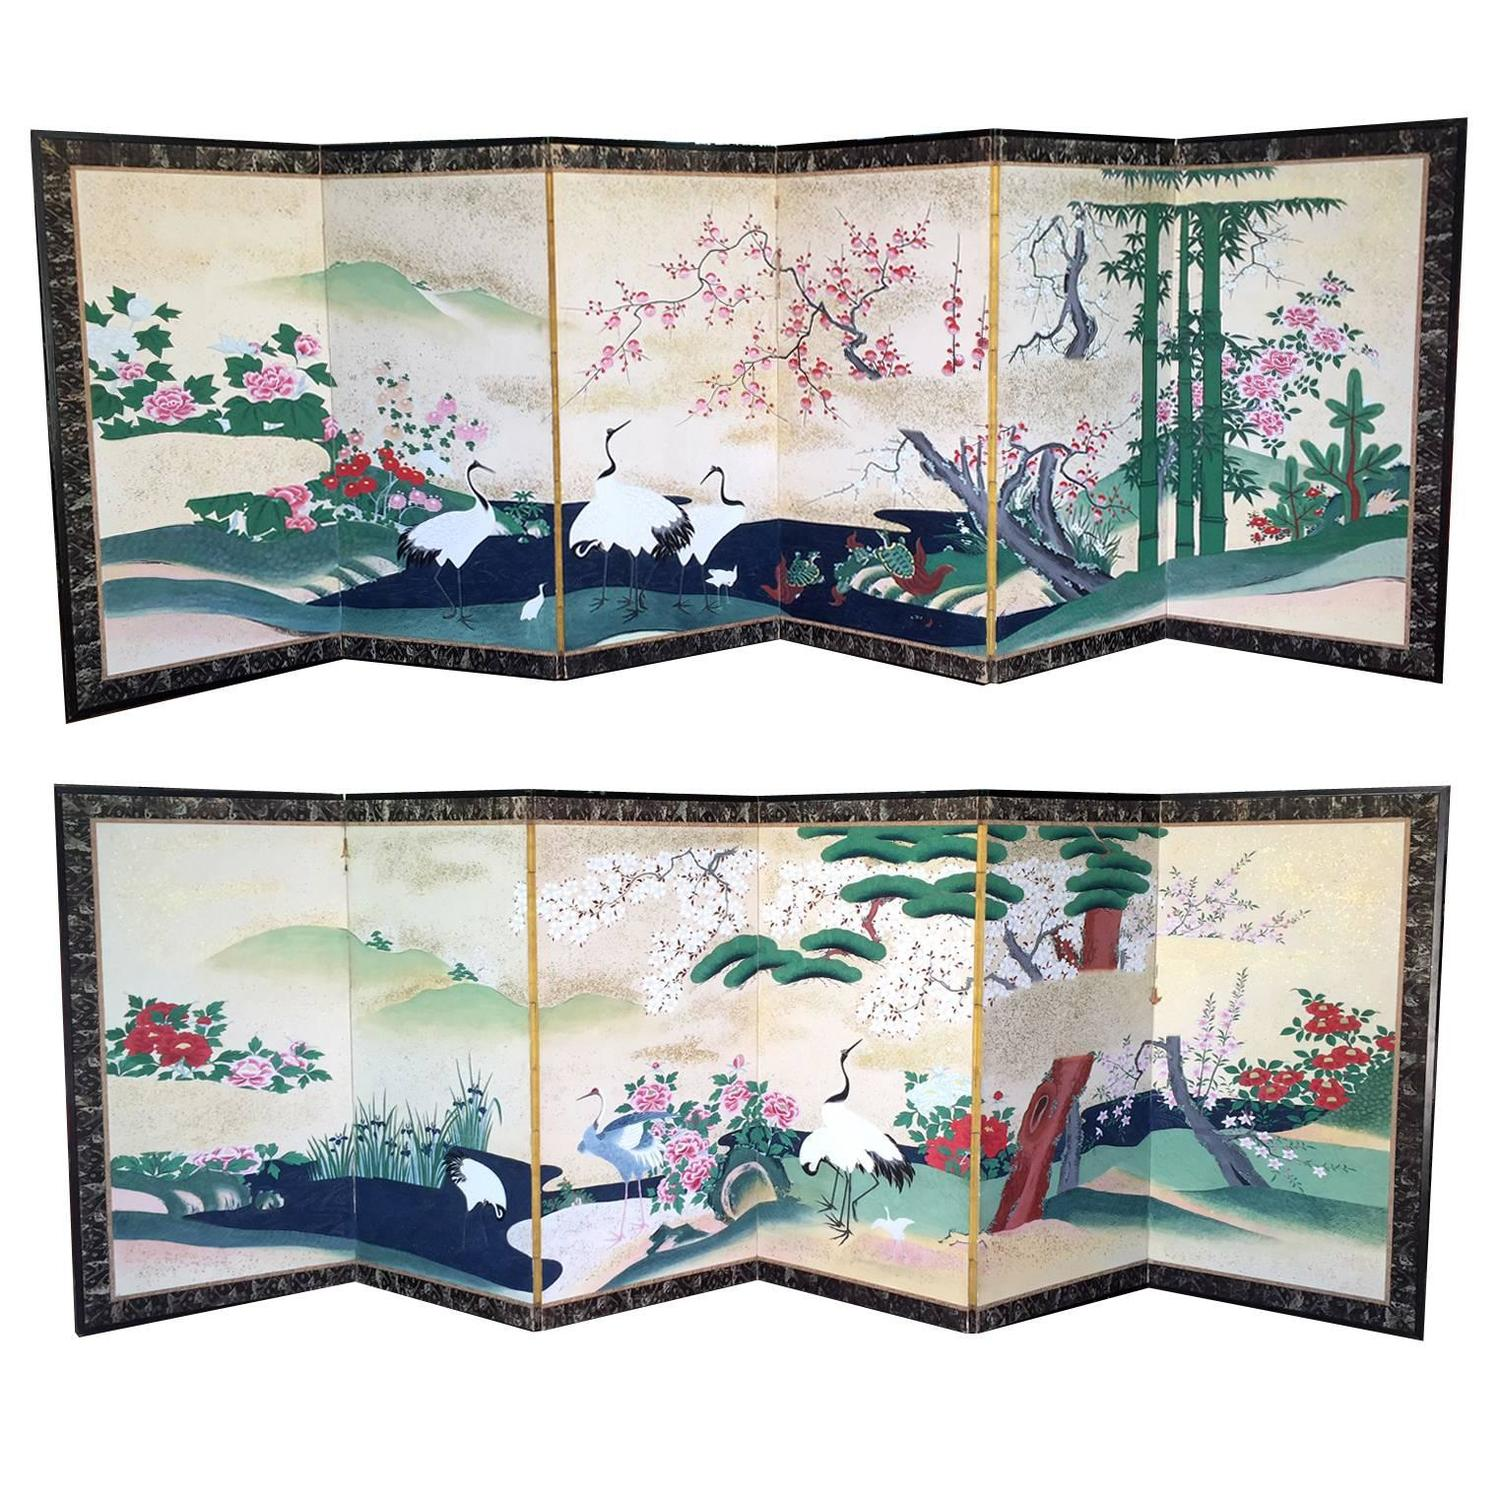 Antique japanese screens for sale - Pair Of Rare Antique Japanese Folding Screens With Provenance For Sale At 1stdibs